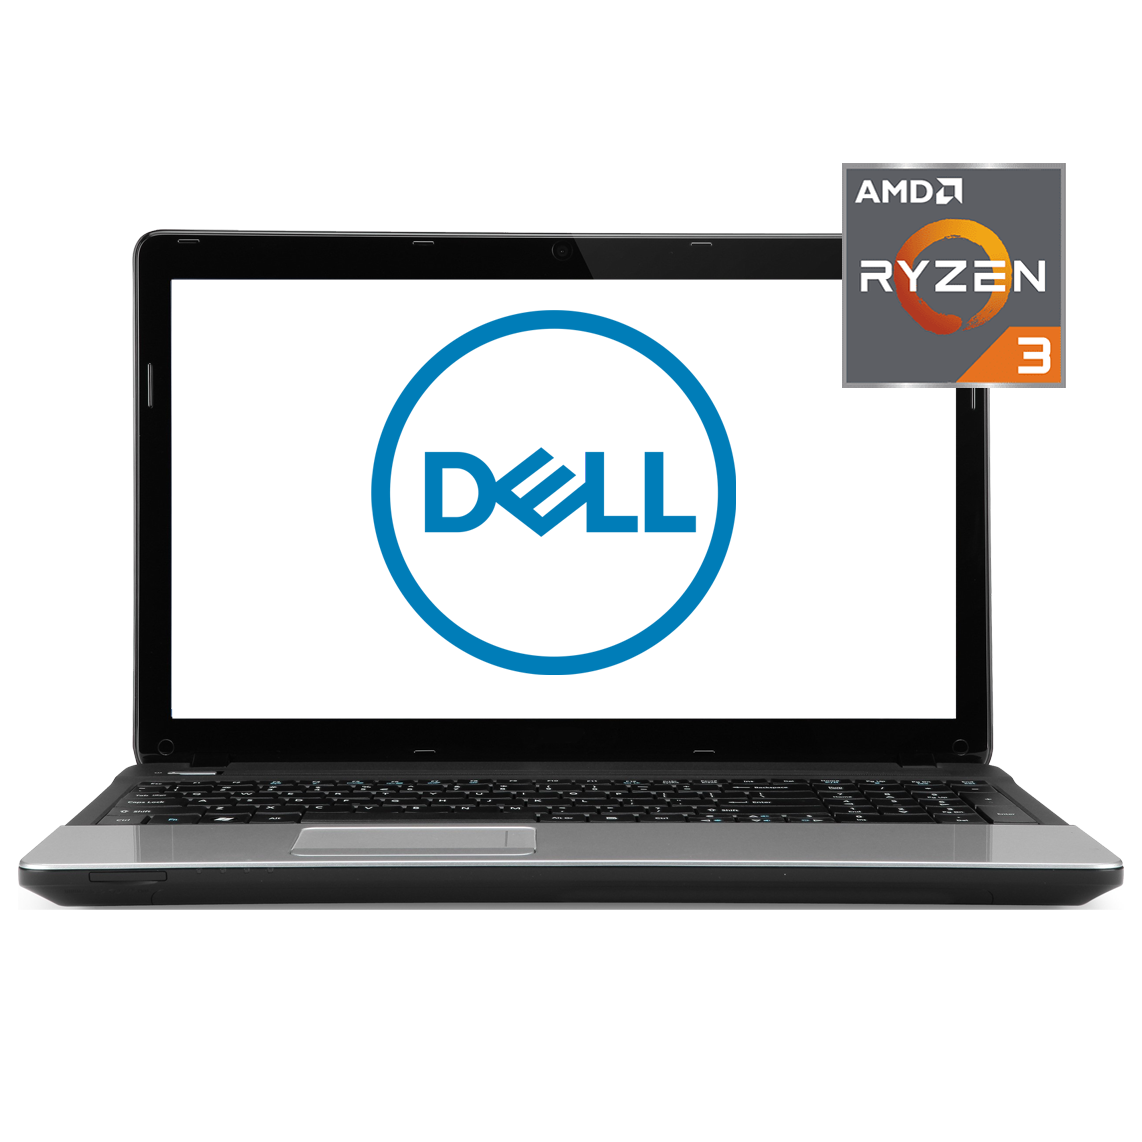 Dell - 13 inch AMD Ryzen 3